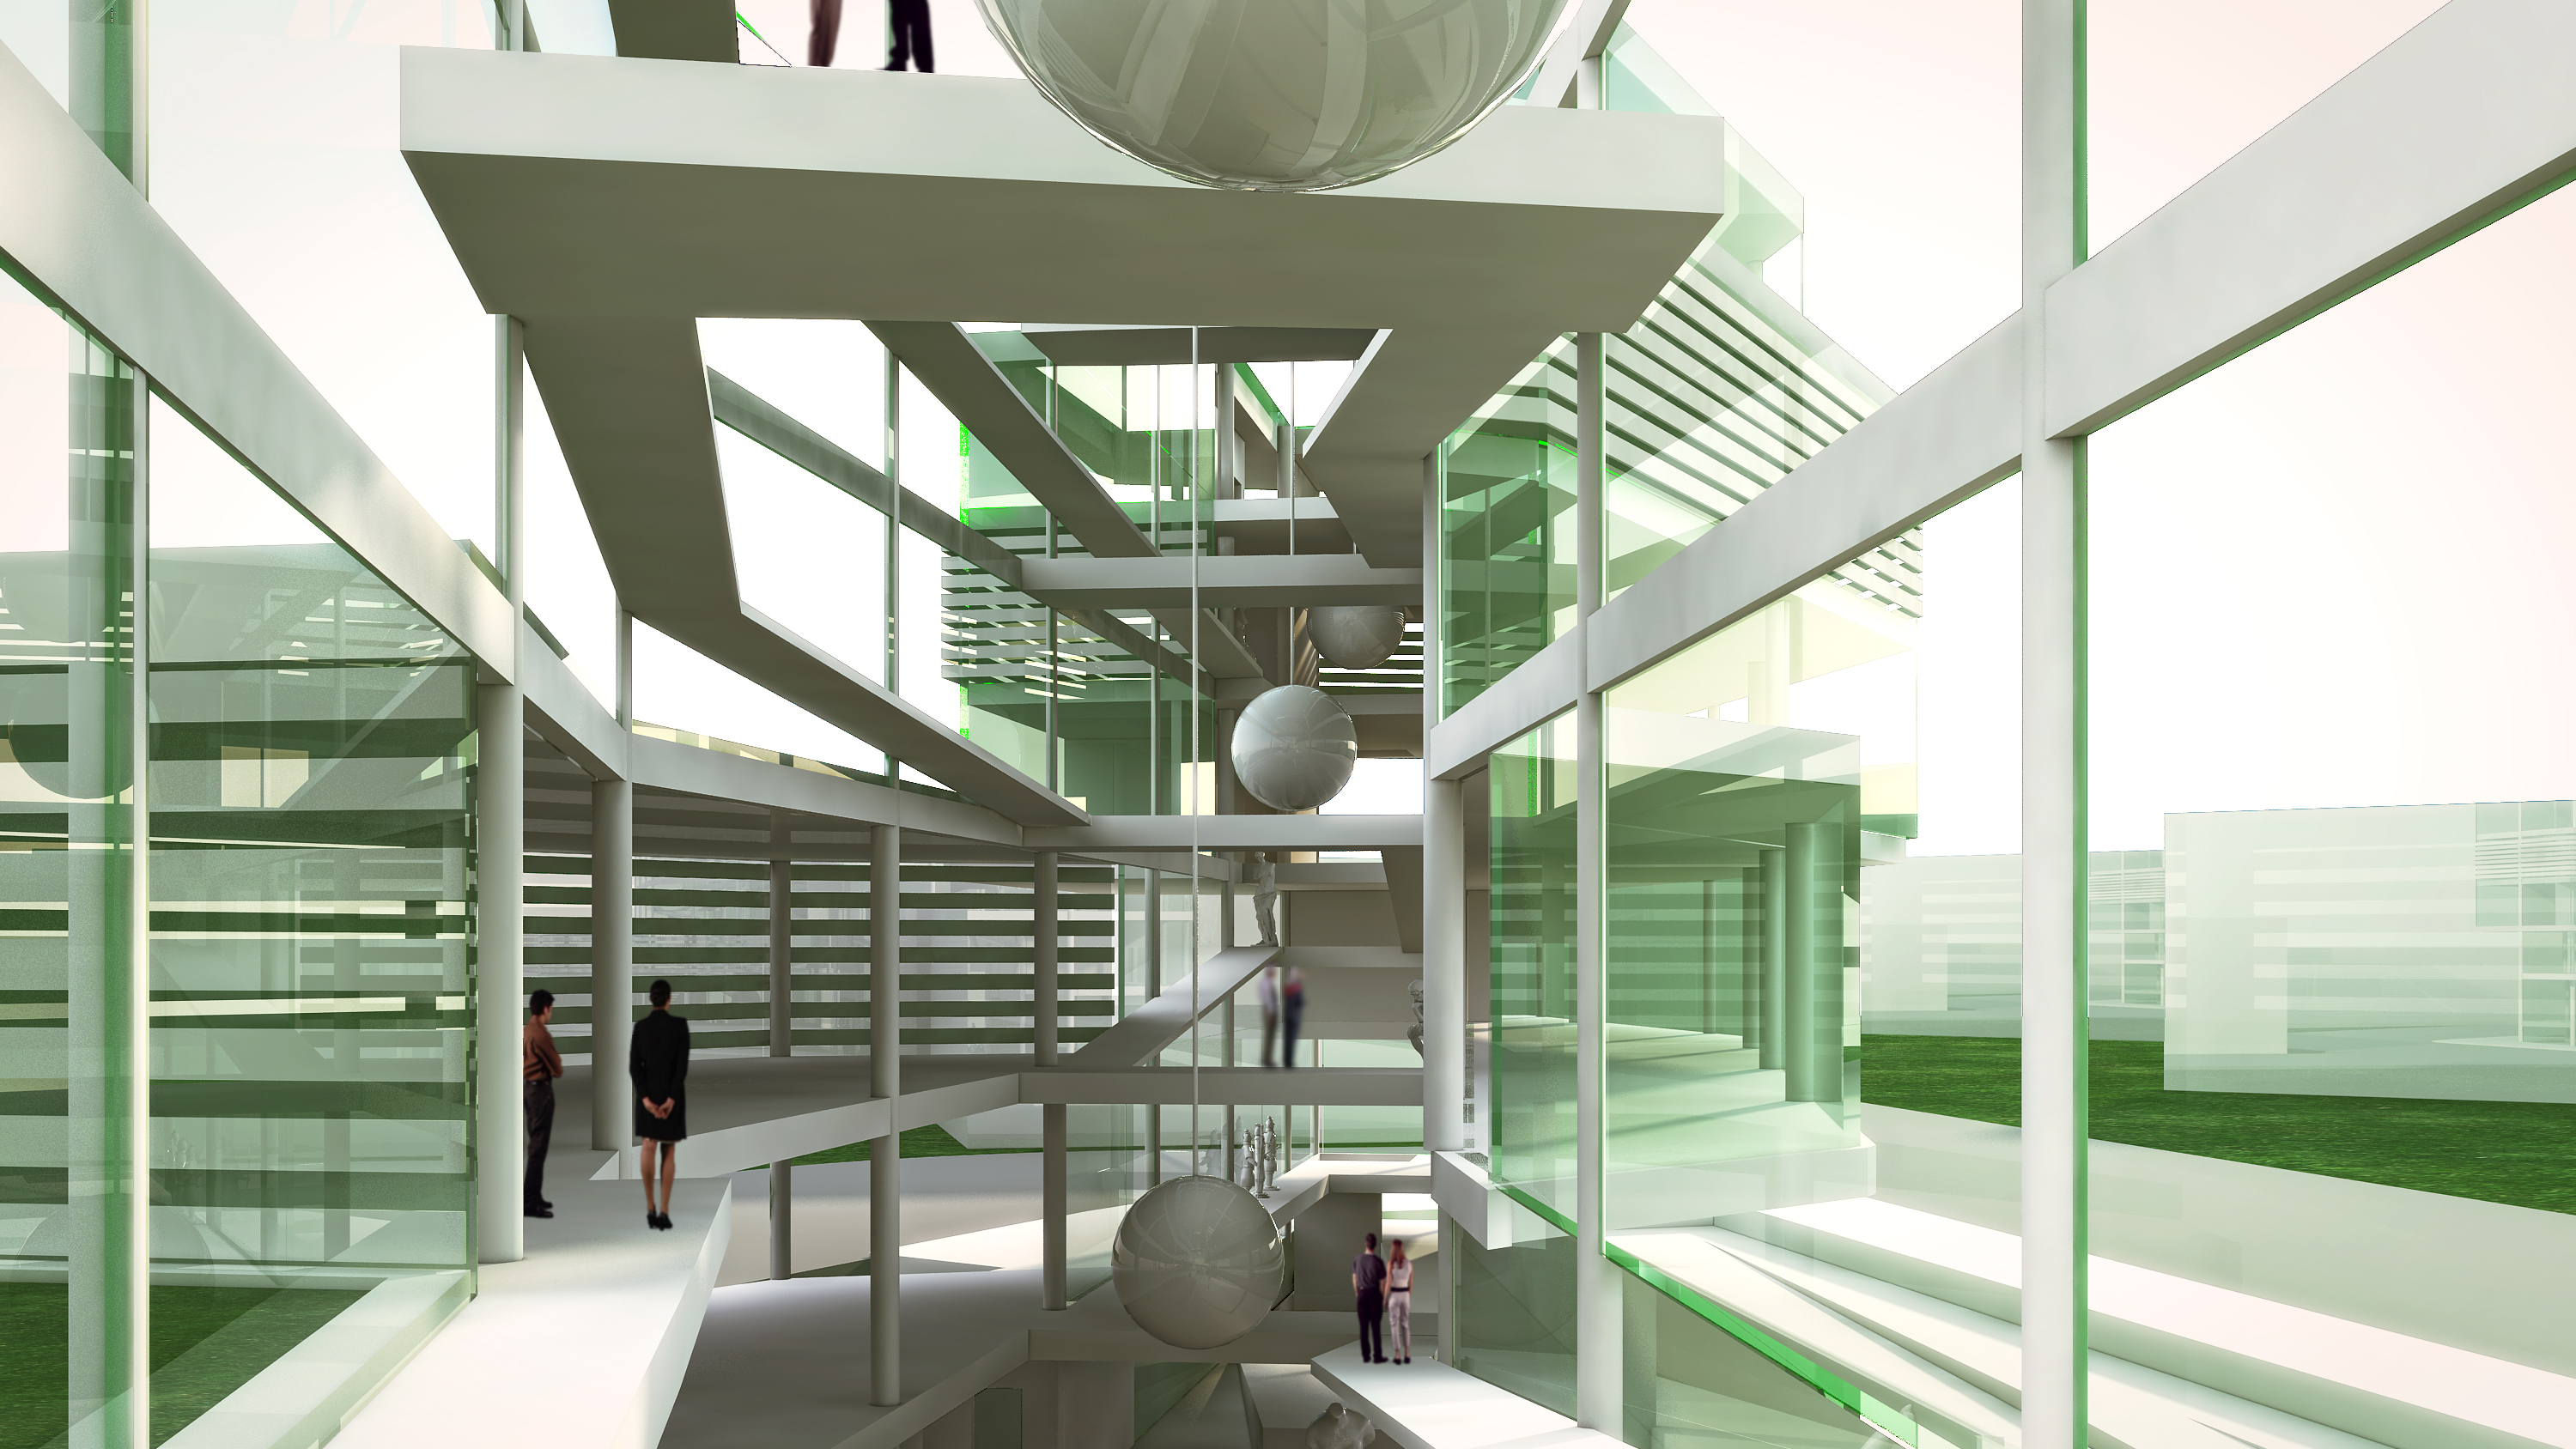 science museum concept interior render